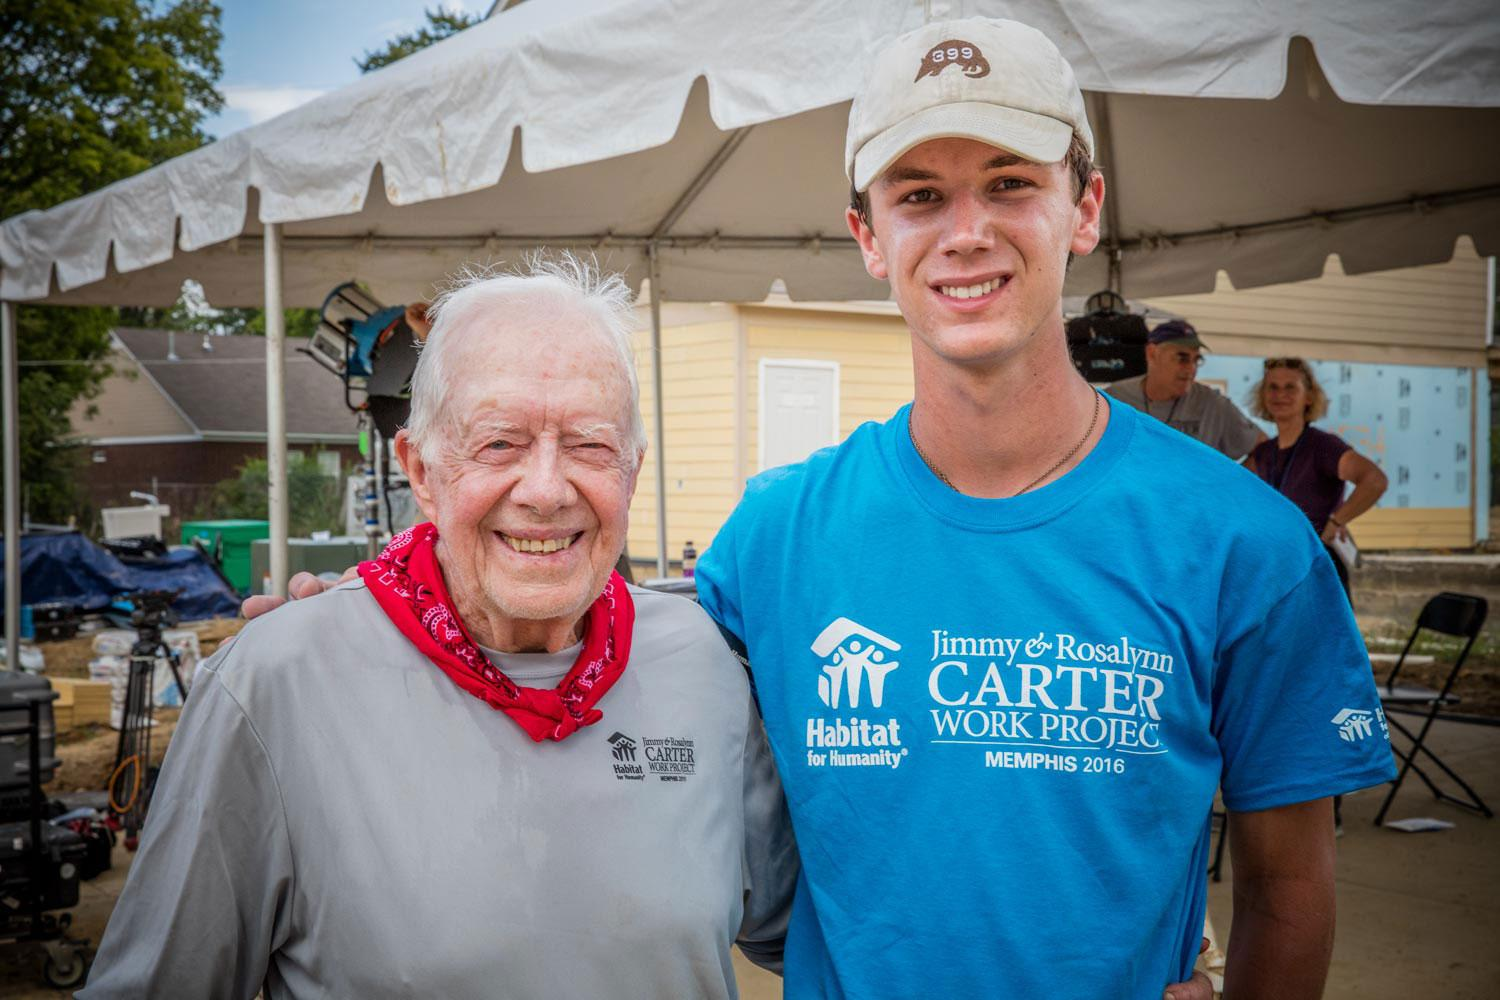 Third-year UVA student and longtime Habitat for Humanity volunteer Taylor Thompson with former President Jimmy Carter at the Carter Work Project, led by Carter and his wife Rosalynn. (Photo courtesy of Taylor Thompson)